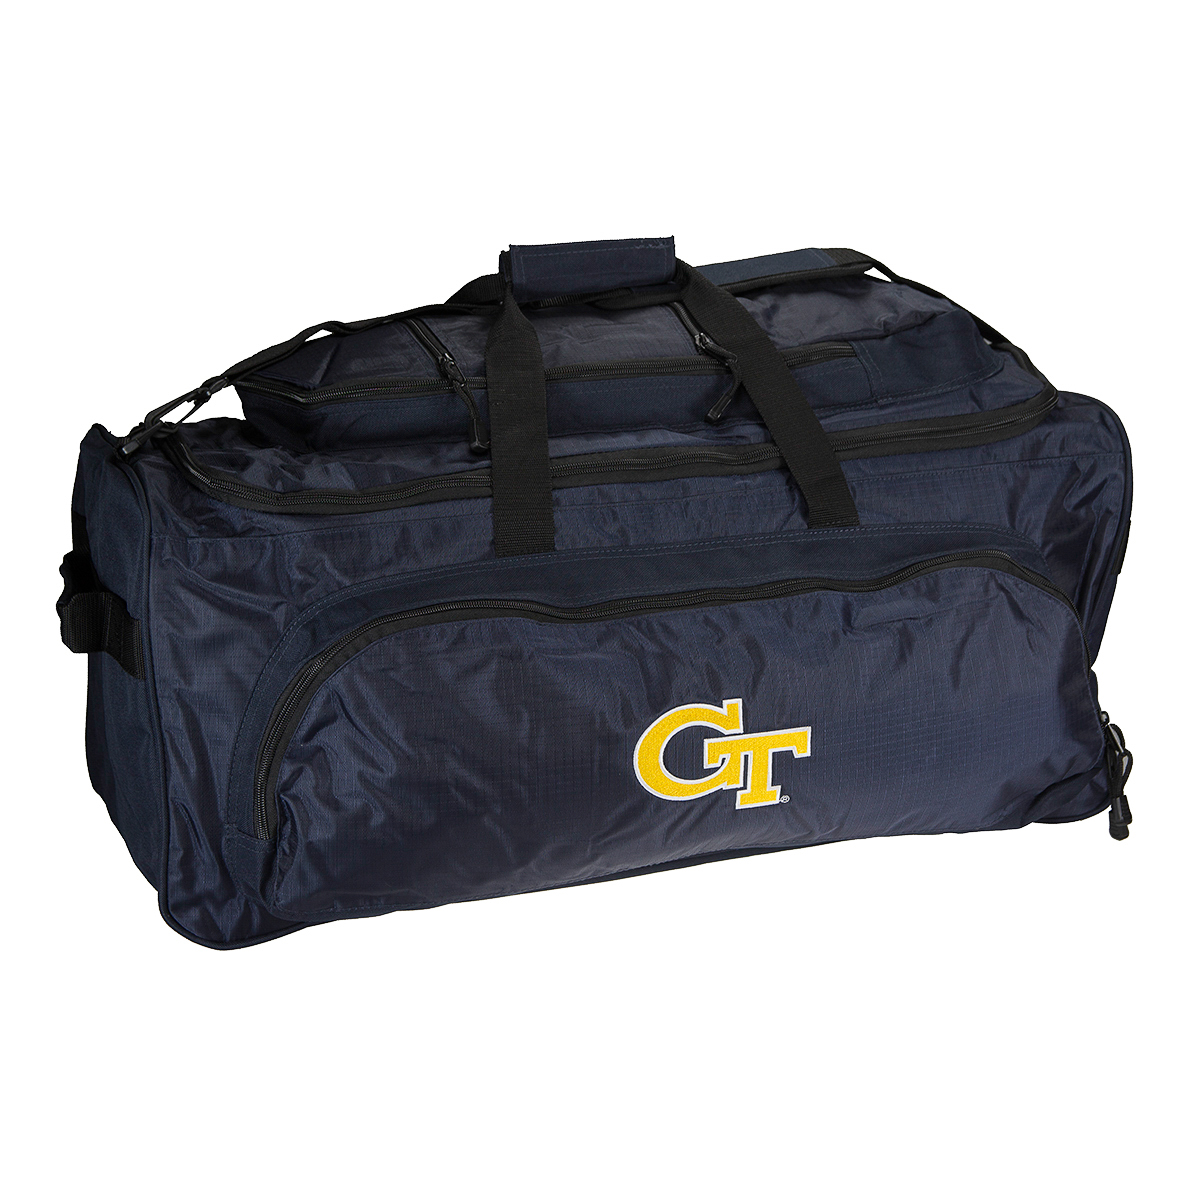 NCAA Heavy Duty Collegiate Sport 27 Large Duffel Tote Bag School College Duffle